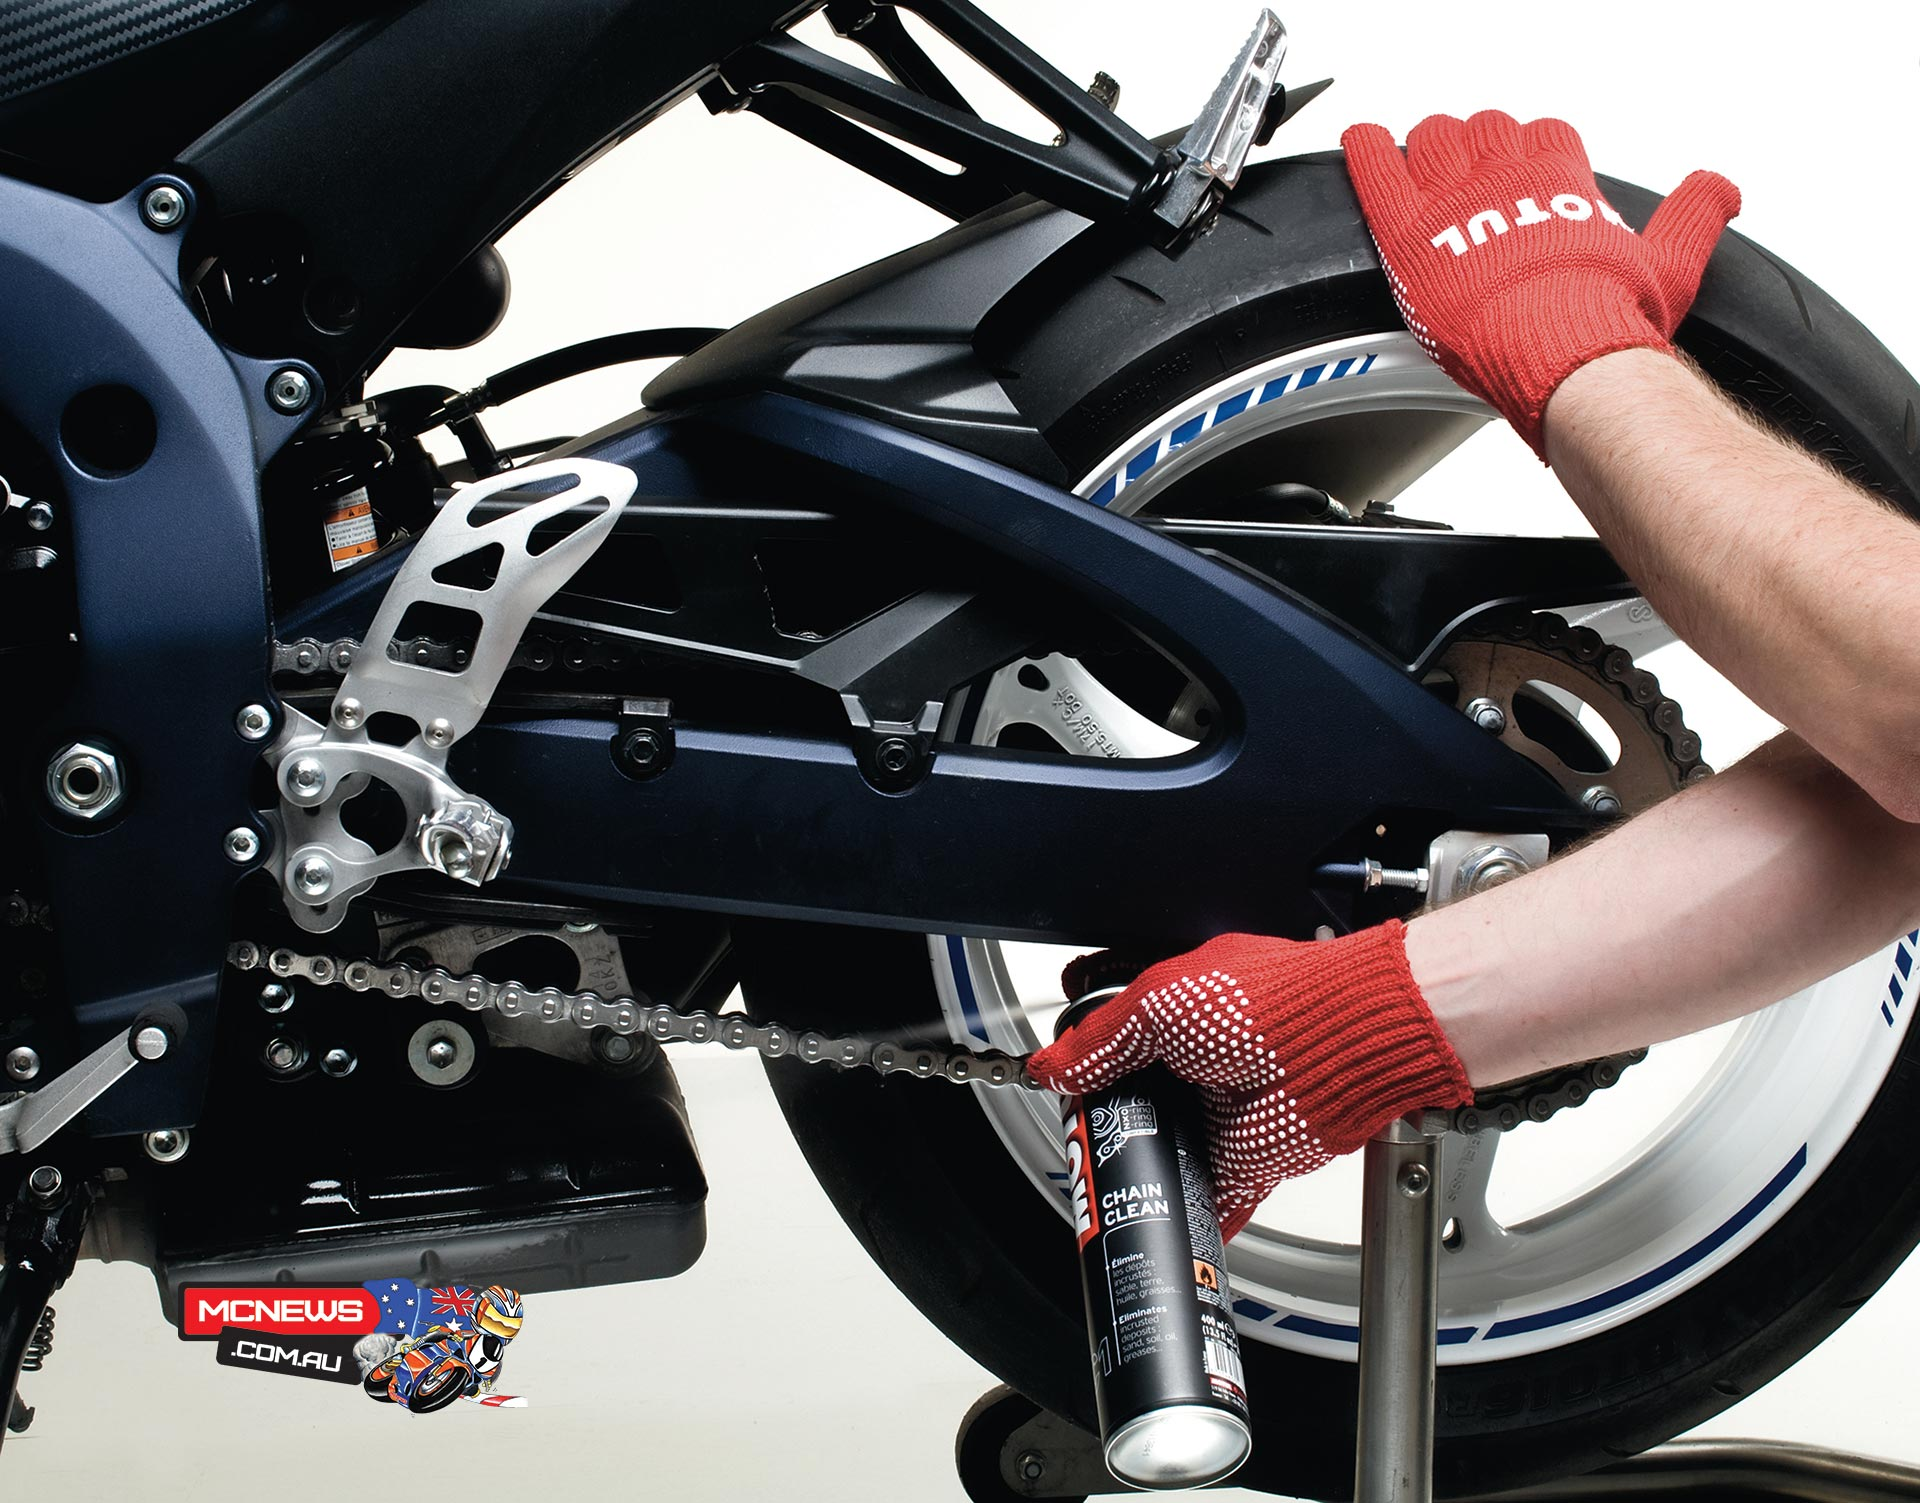 Motul Motorcycle Chain Maintenance Guide - Spray on MOTUL Chain Clean and leave it to soak